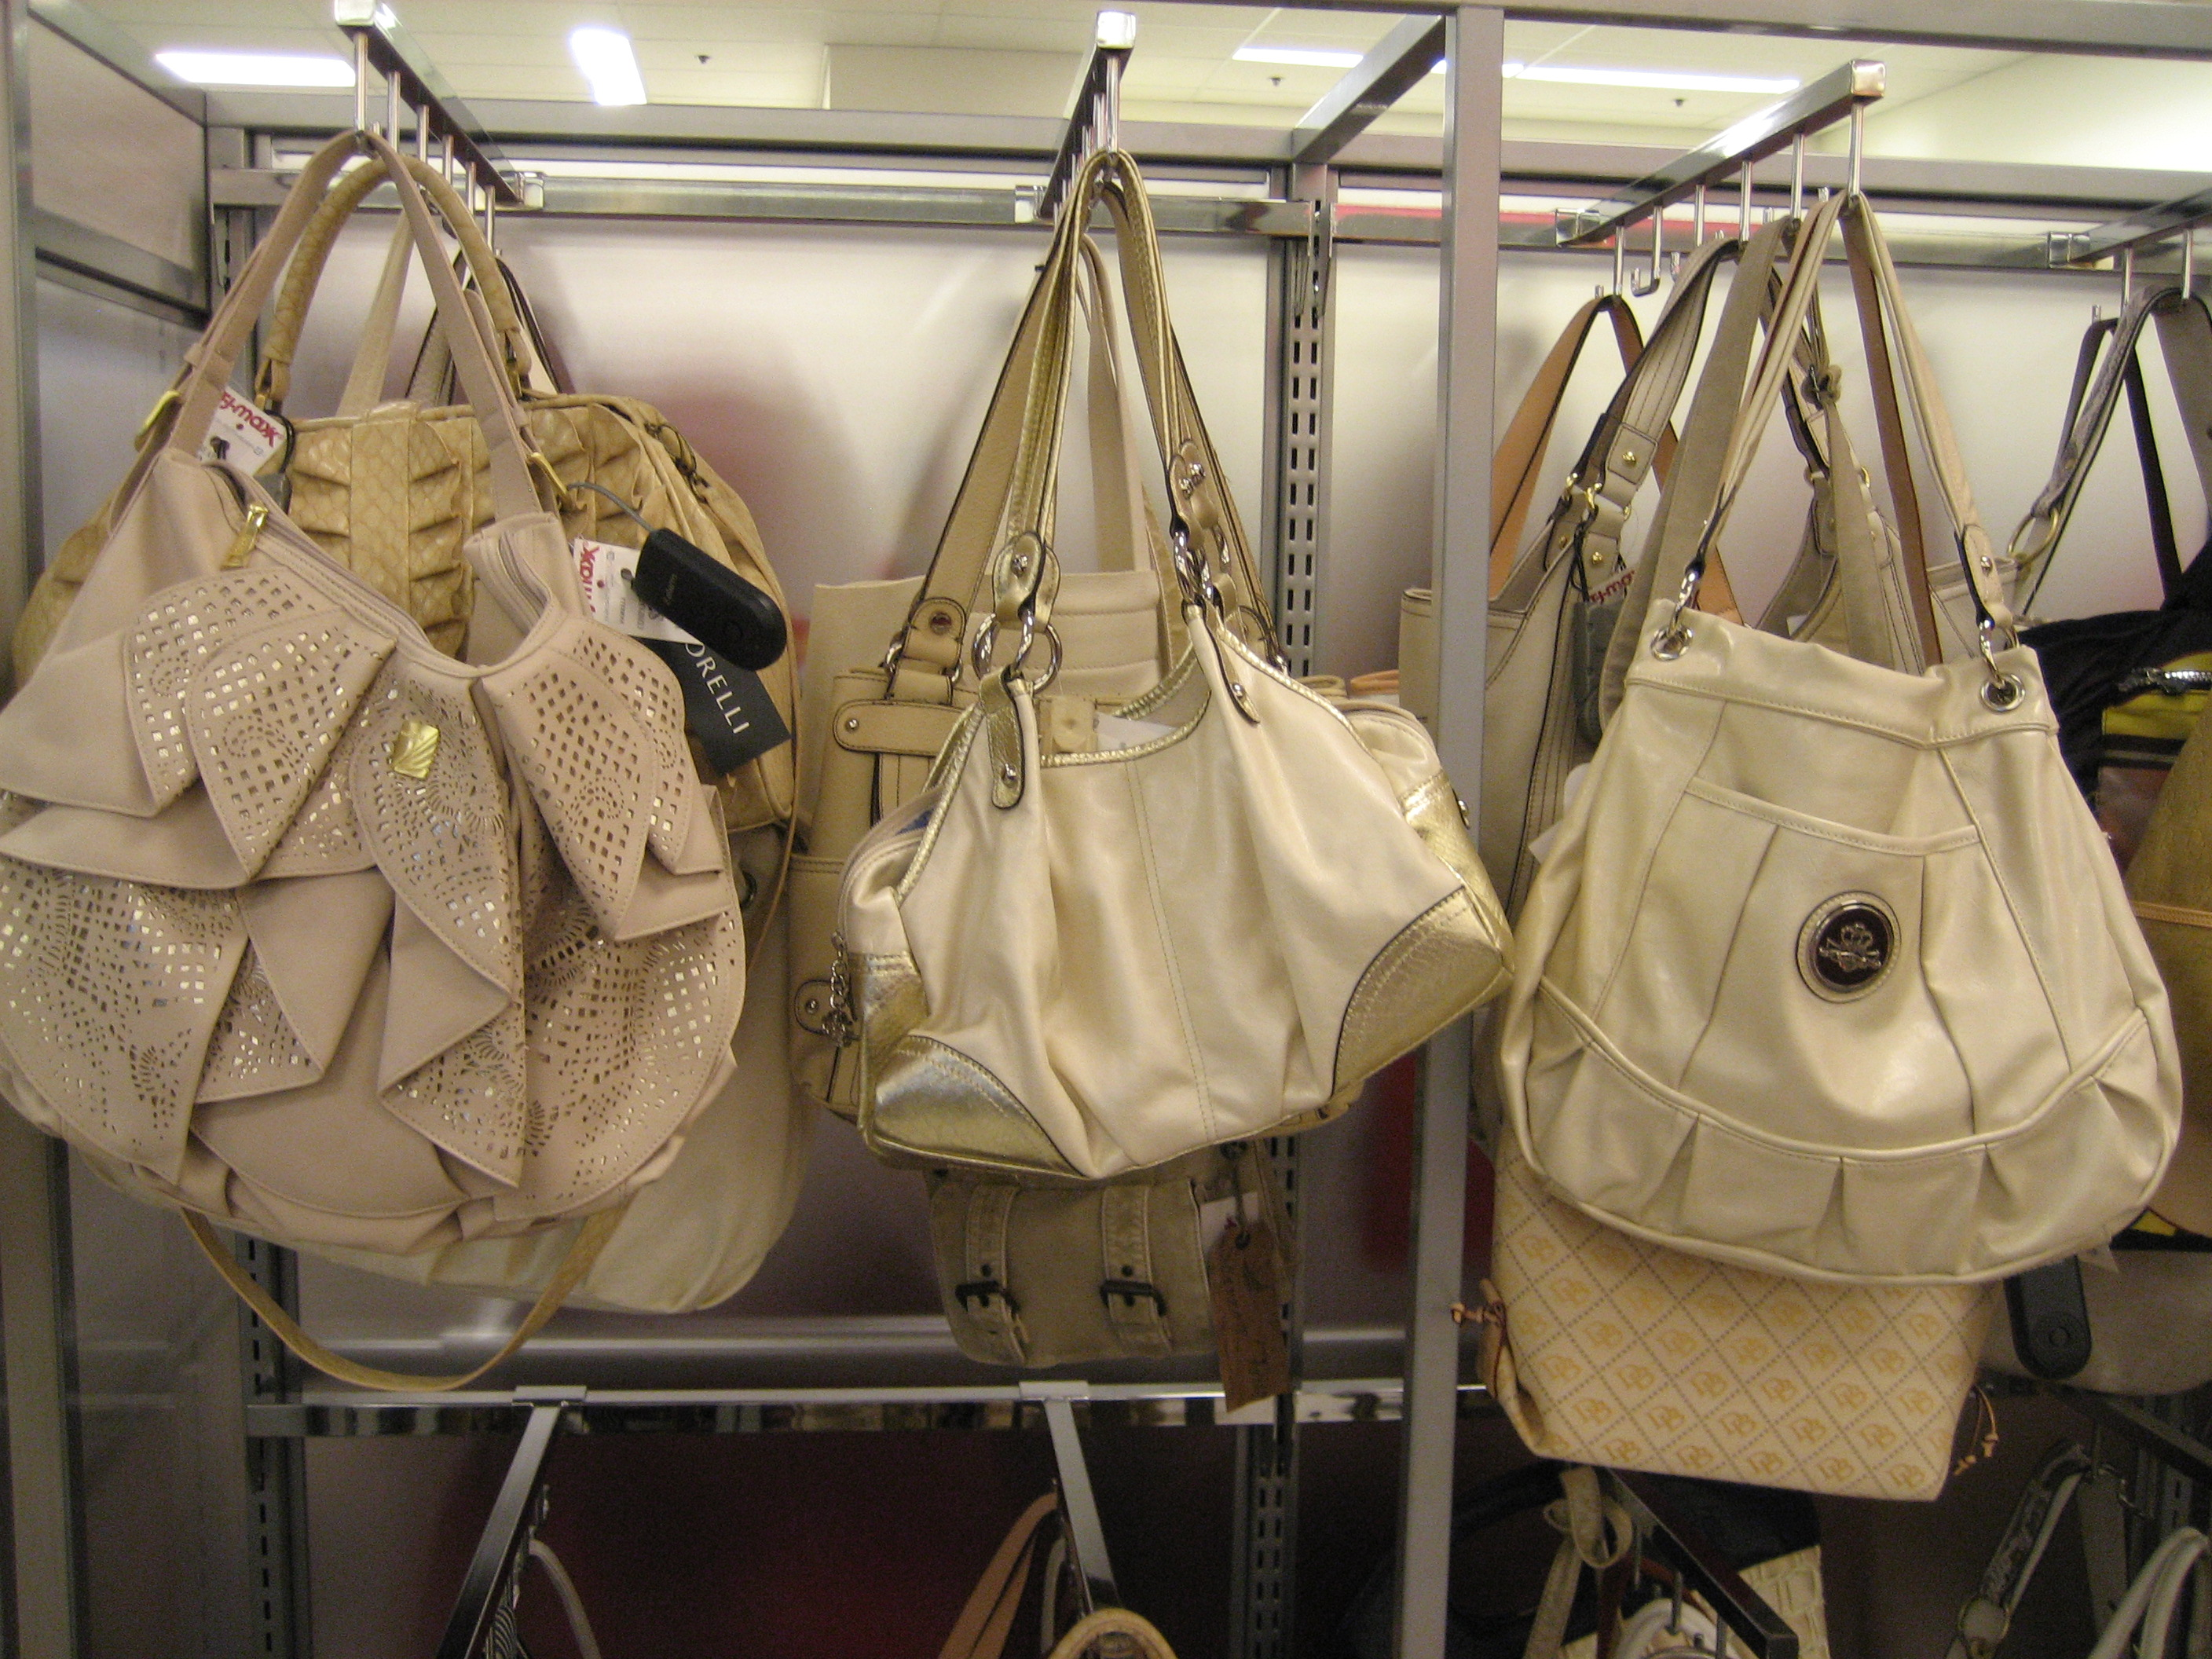 df67d3463 Does Tj Maxx Sell Authentic Handbags | The Art of Mike Mignola